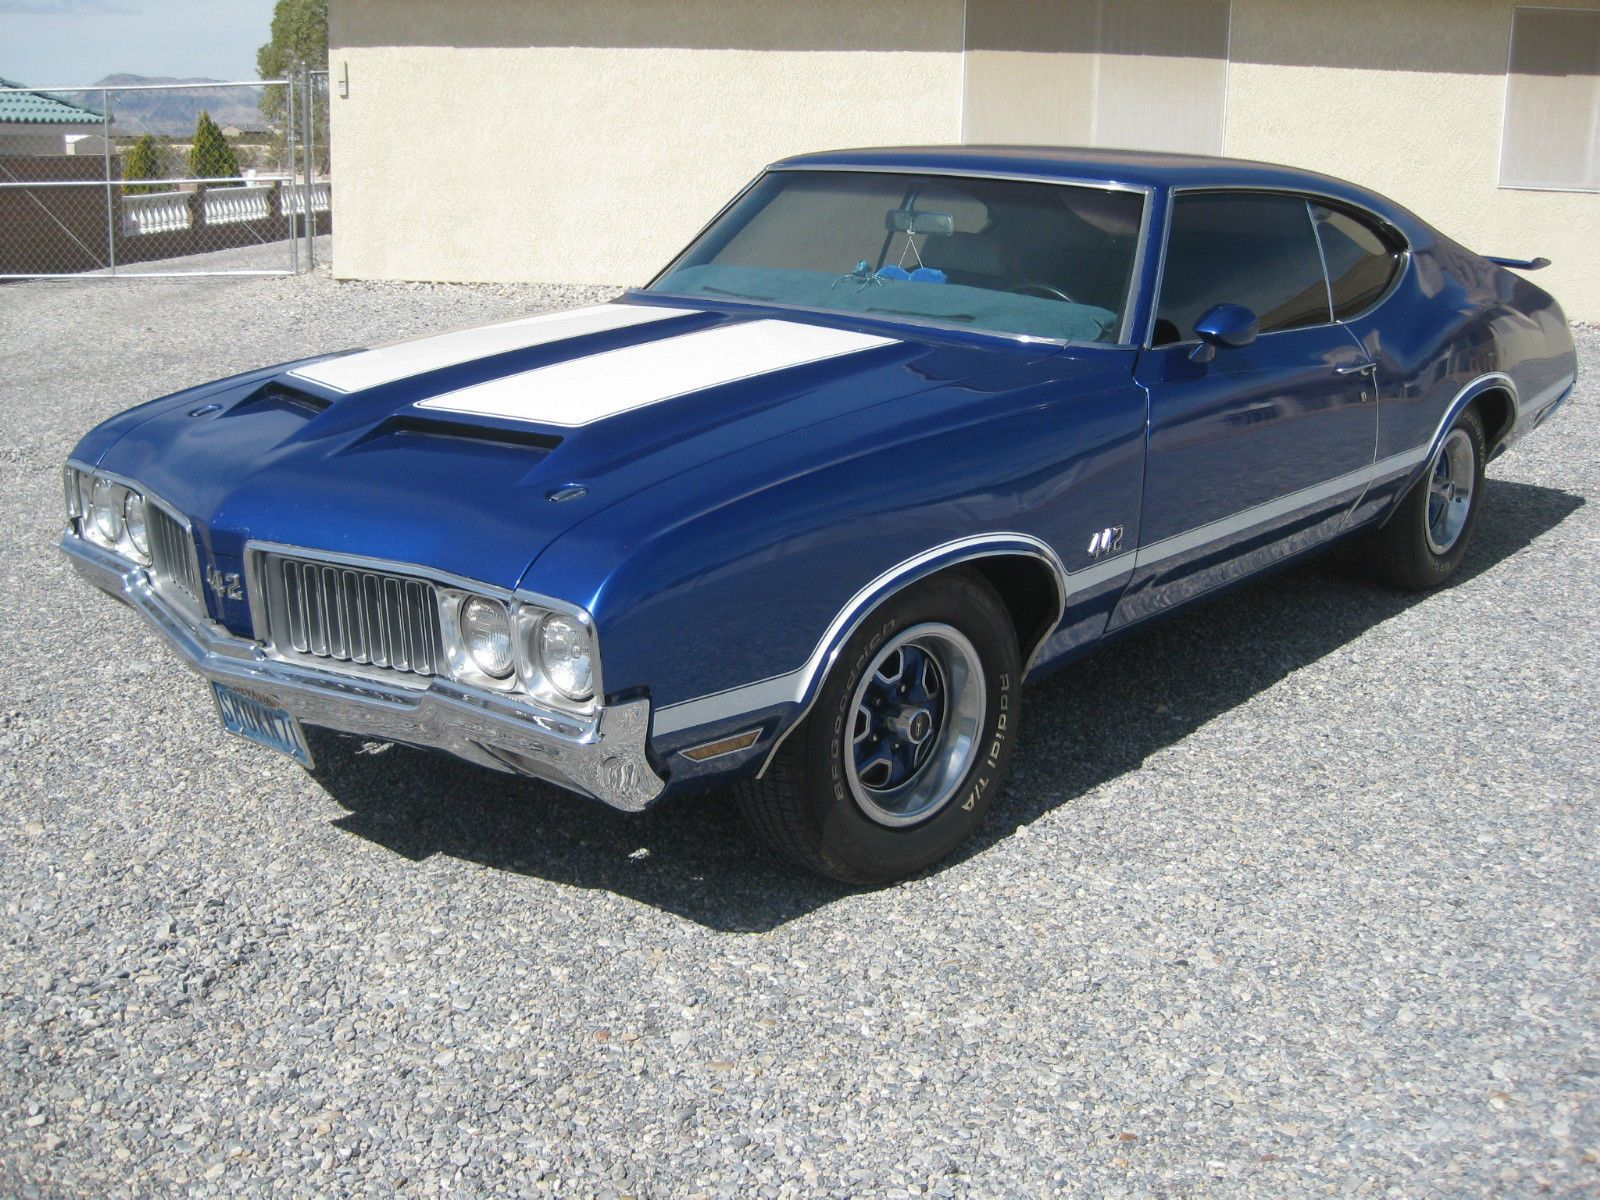 Purchase used 1970 oldsmobile cutlass w31 post coupe 1 of 116 built - 1970 Oldsmobile 442 Muscle Car Classic Car For Sale